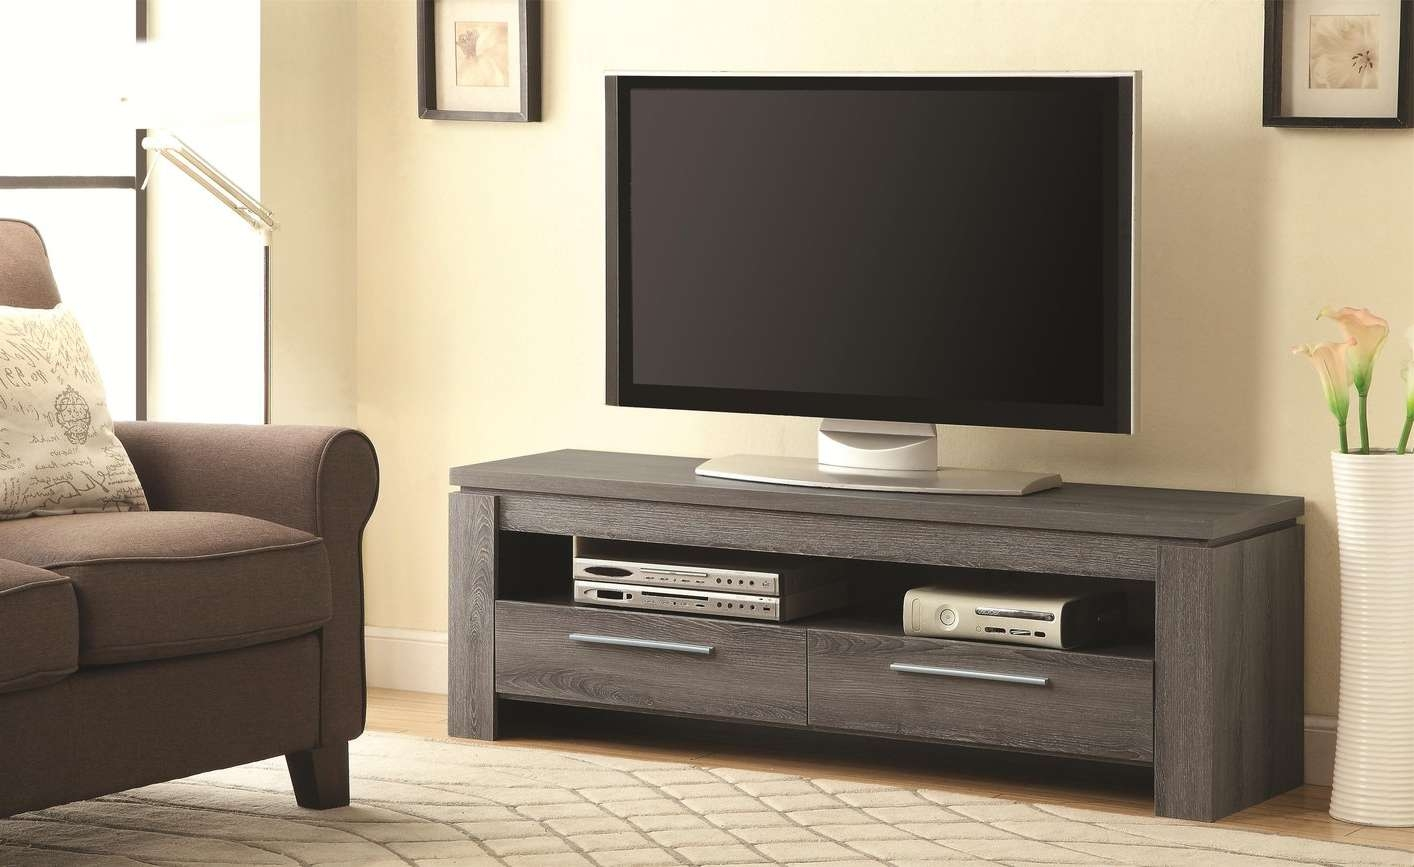 Grey Wood Tv Stand – Steal A Sofa Furniture Outlet Los Angeles Ca In Wooden Tv Cabinets (View 9 of 20)